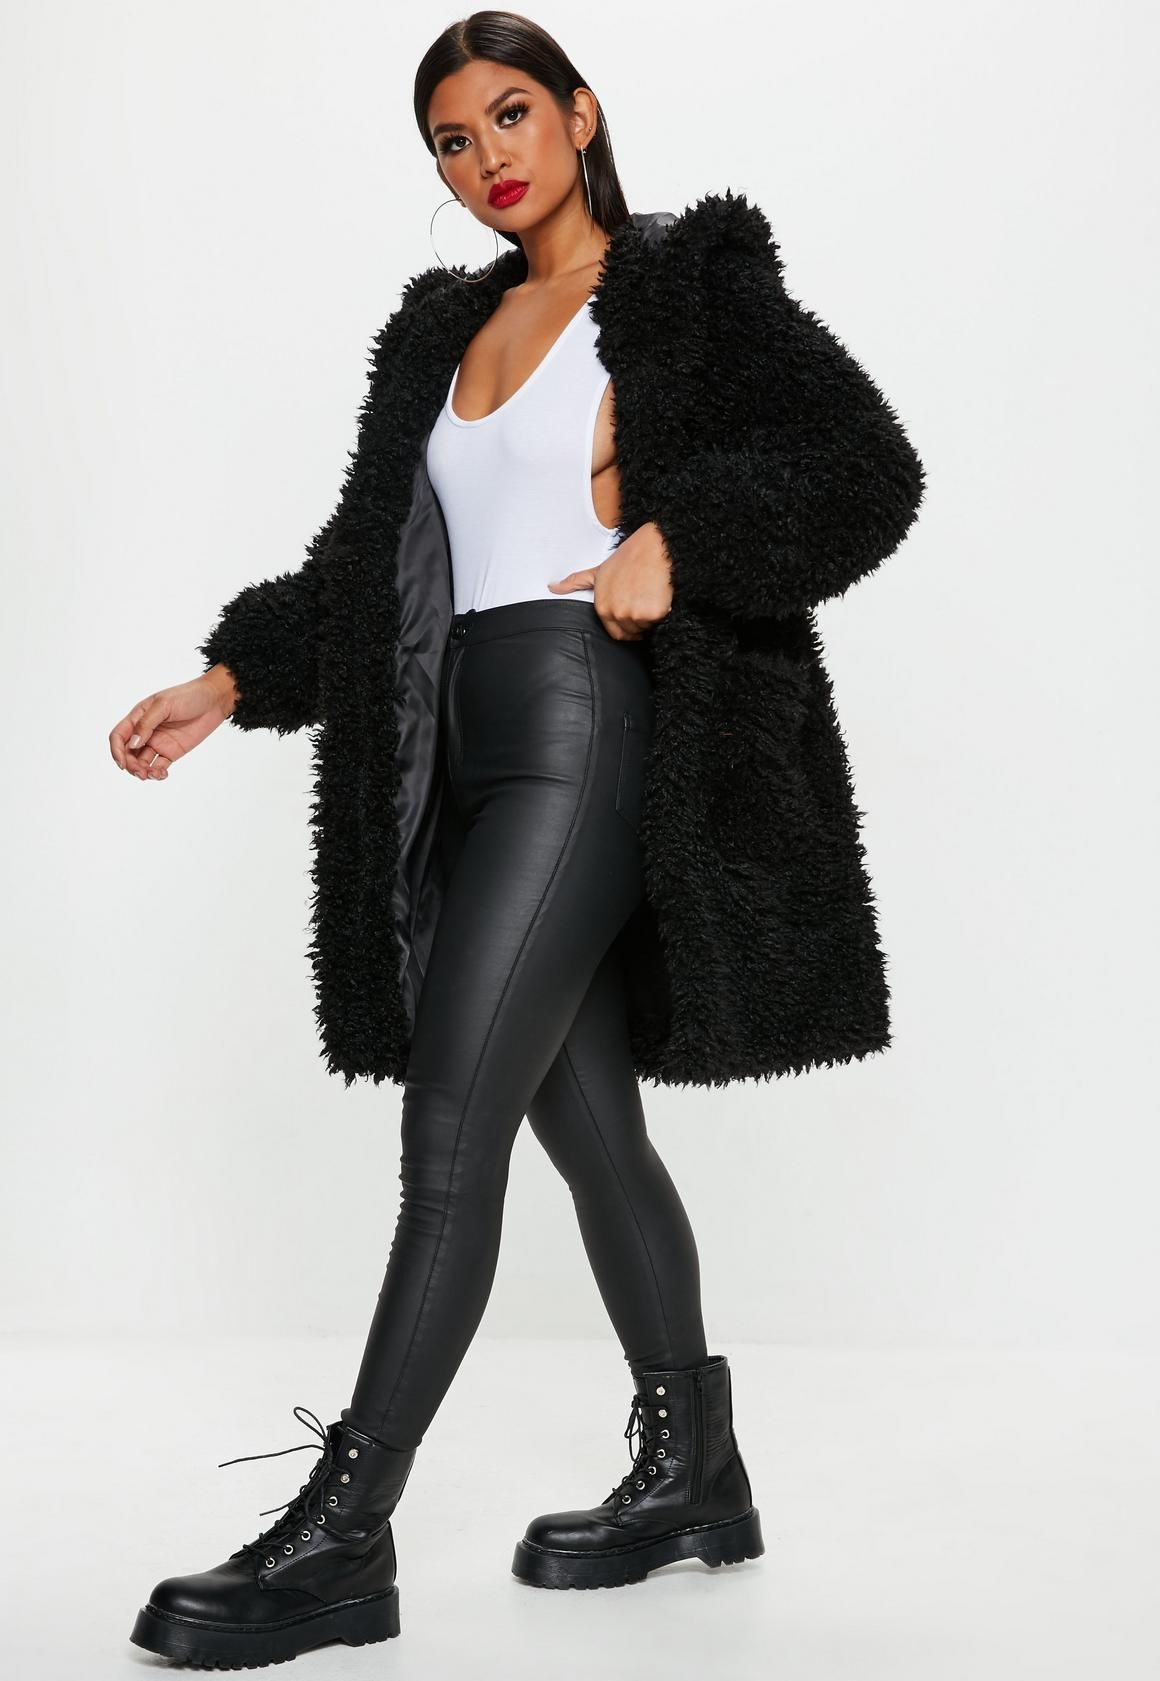 24a8cfadfcf0b Missguided - Black Hooded Borg Longline Teddy Coat - All black outfit -  winter coat - jacket - missguided - black boots - black tights - womens  fashion ...